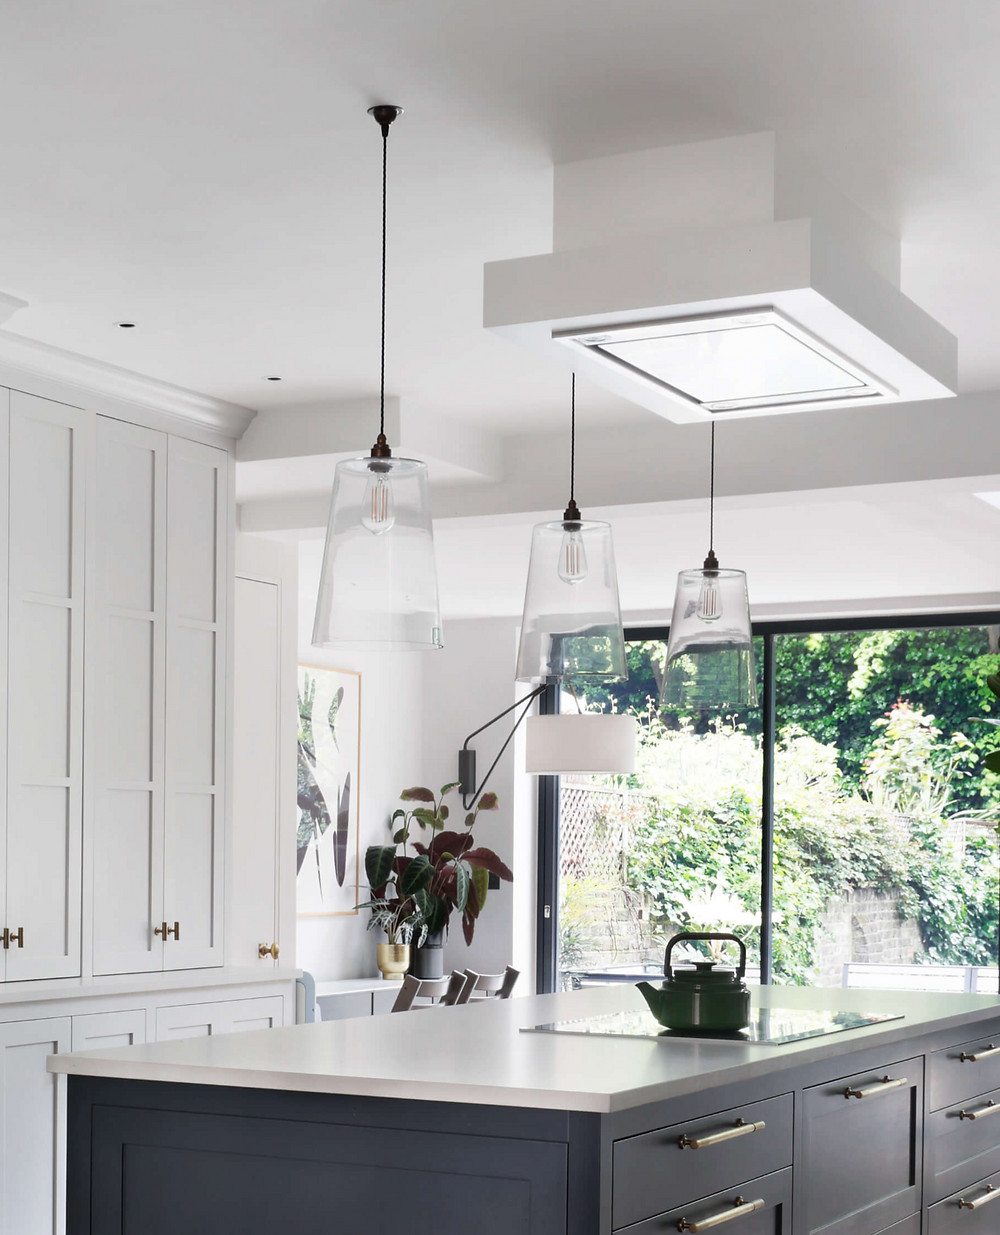 kitchen ceiling lighting pendant above island at the project in Maida Vale, West London, by Catherine Wilman Interiors